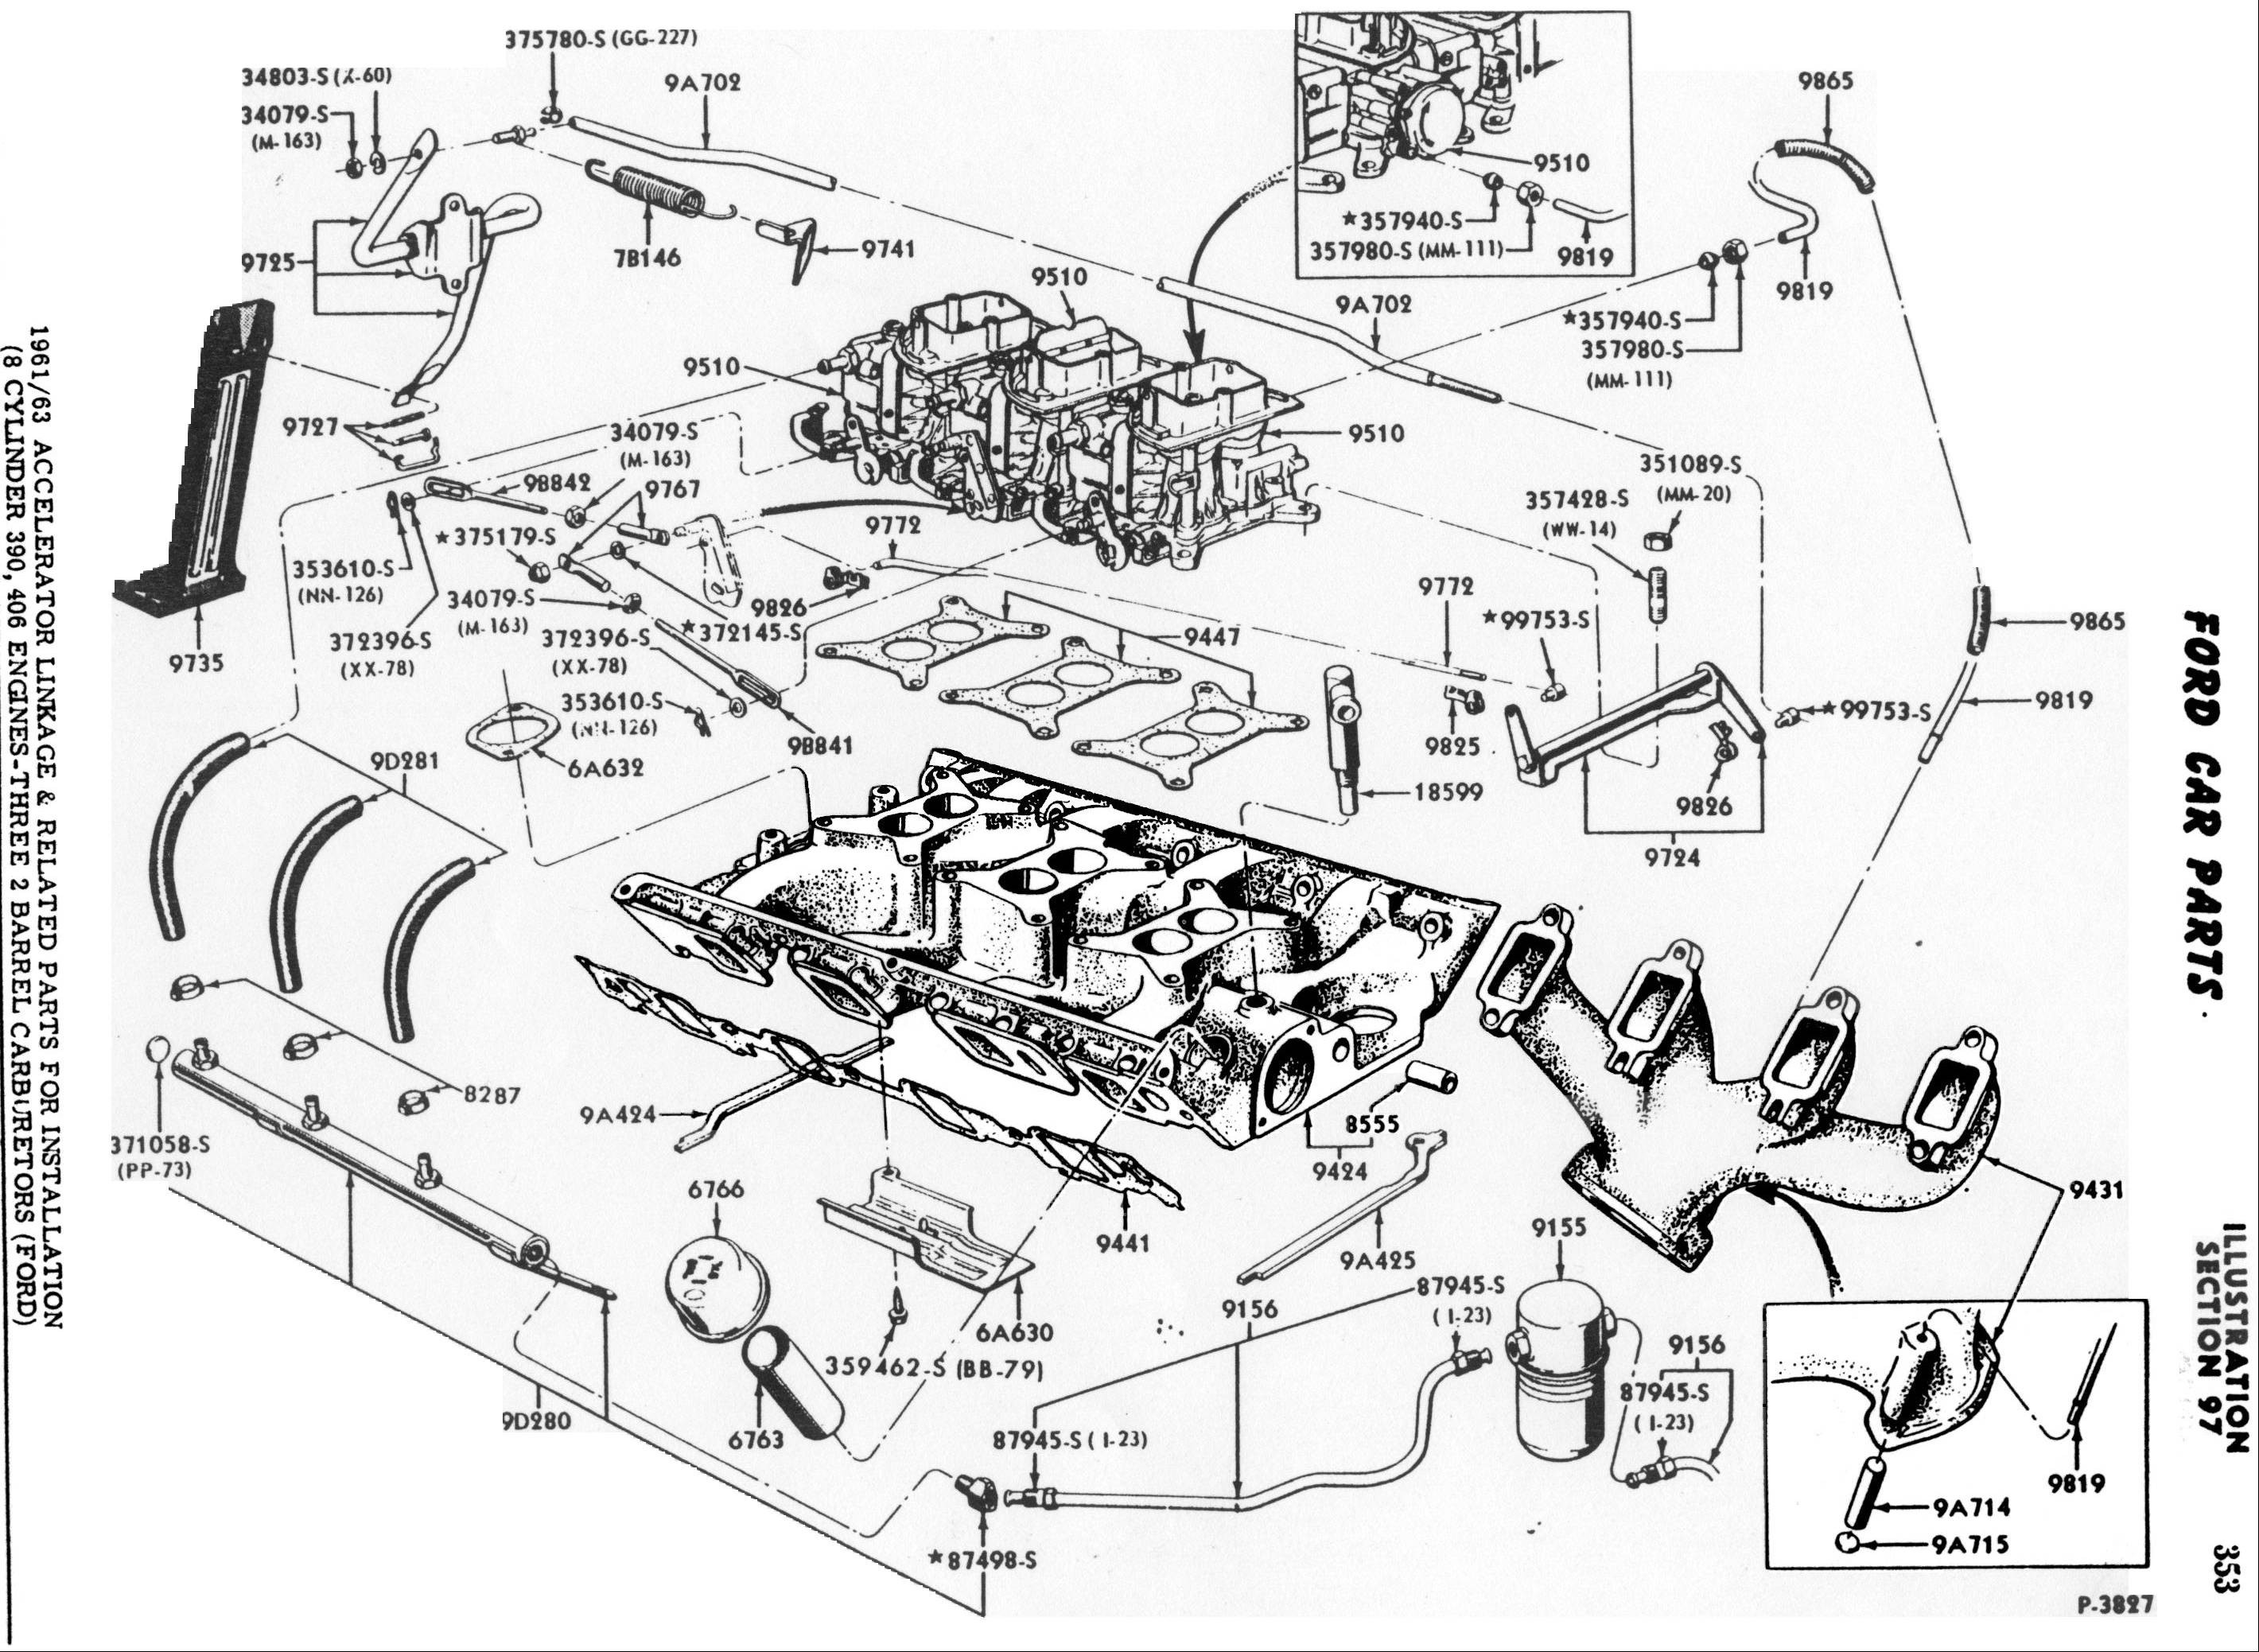 2000 ford focus engine diagram 460 ford engine diagram wiring info of 2000 ford focus